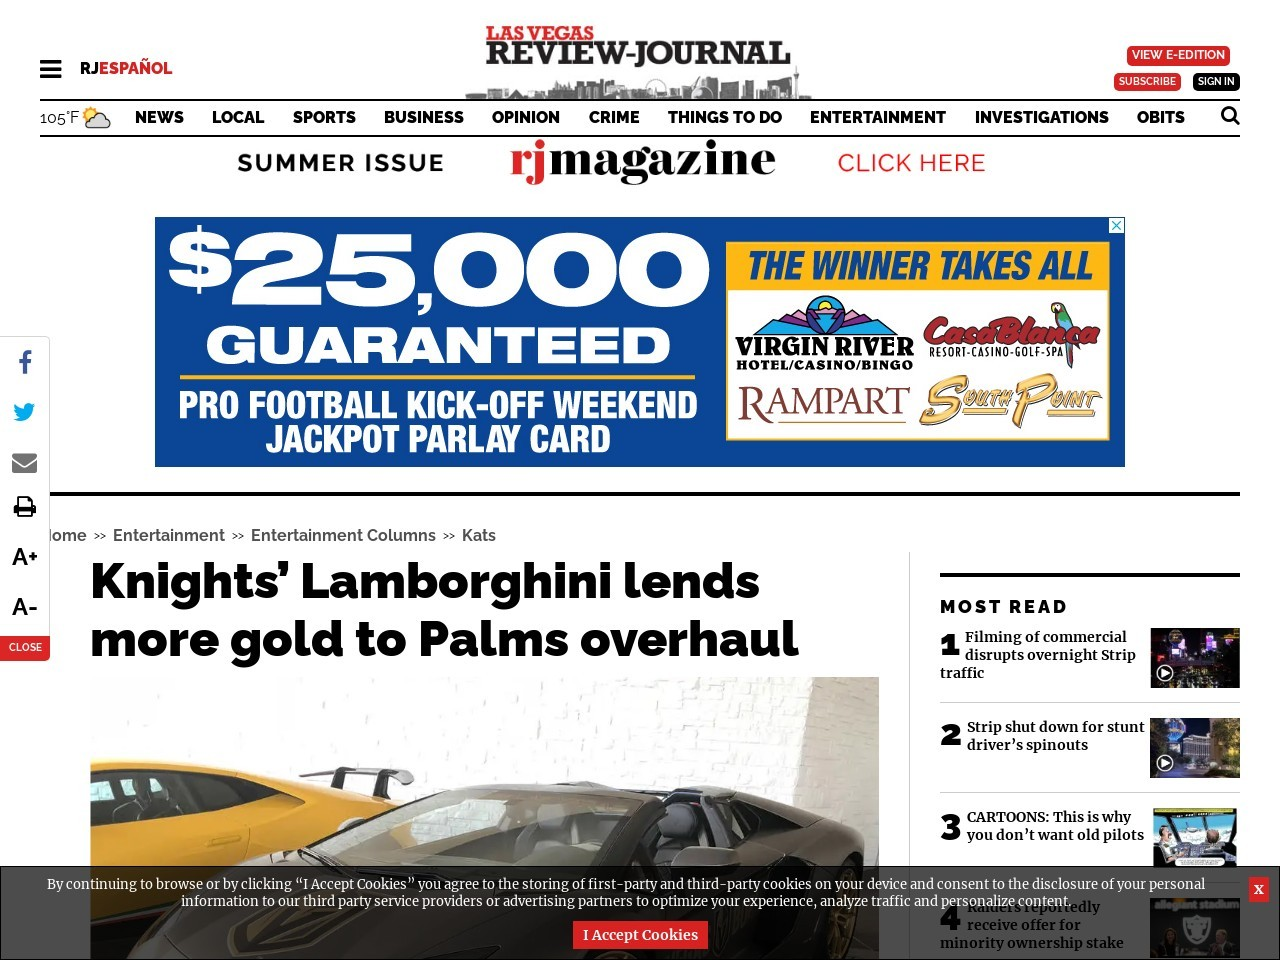 Knights' Lamborghini lends more gold to Palms overhaul